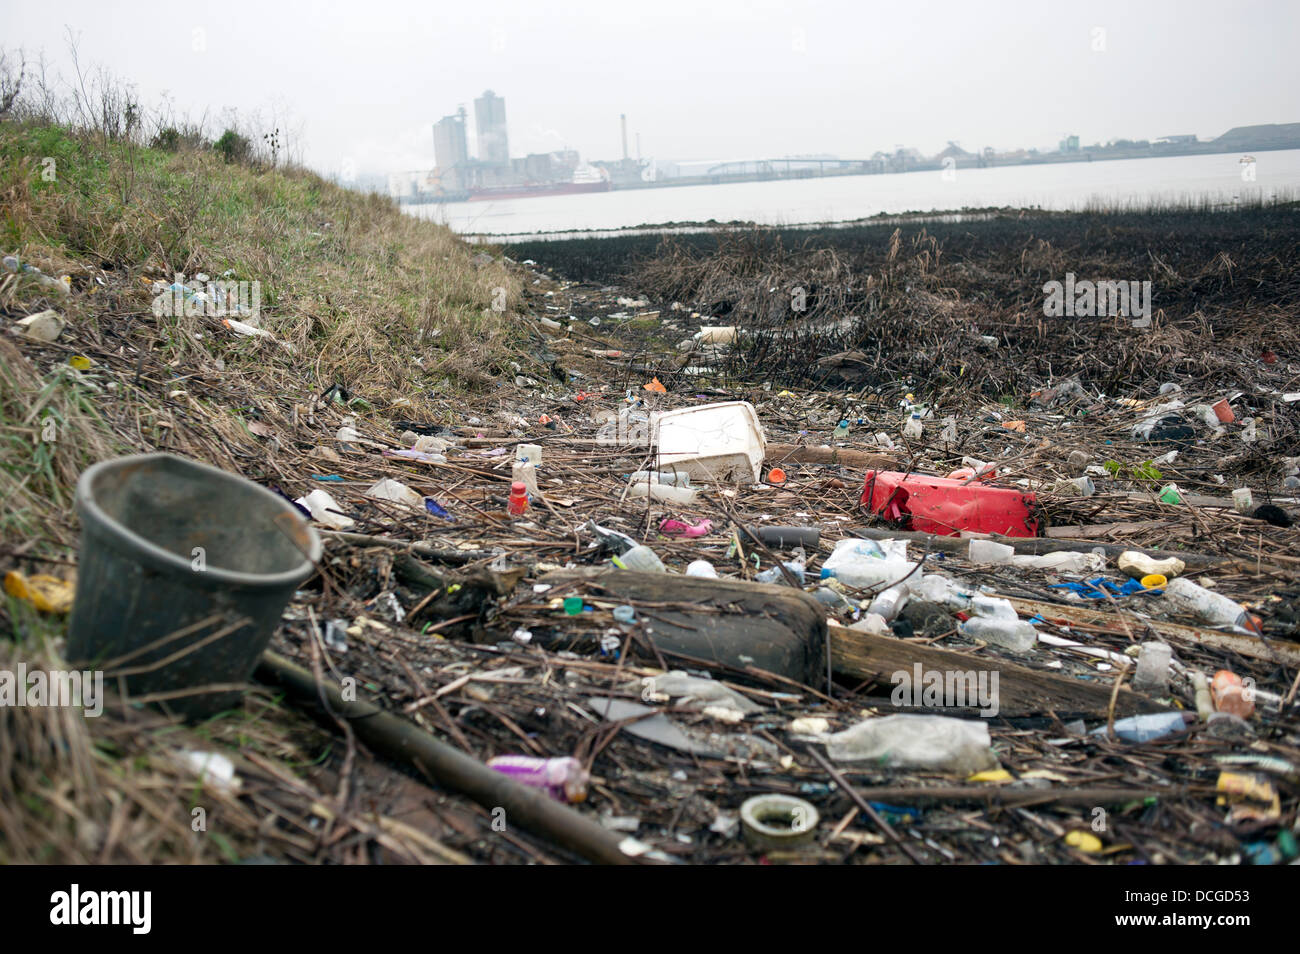 Rubbish is pictured on the shore of the River Thames near Rainham Landfill Site in Essex - Stock Image